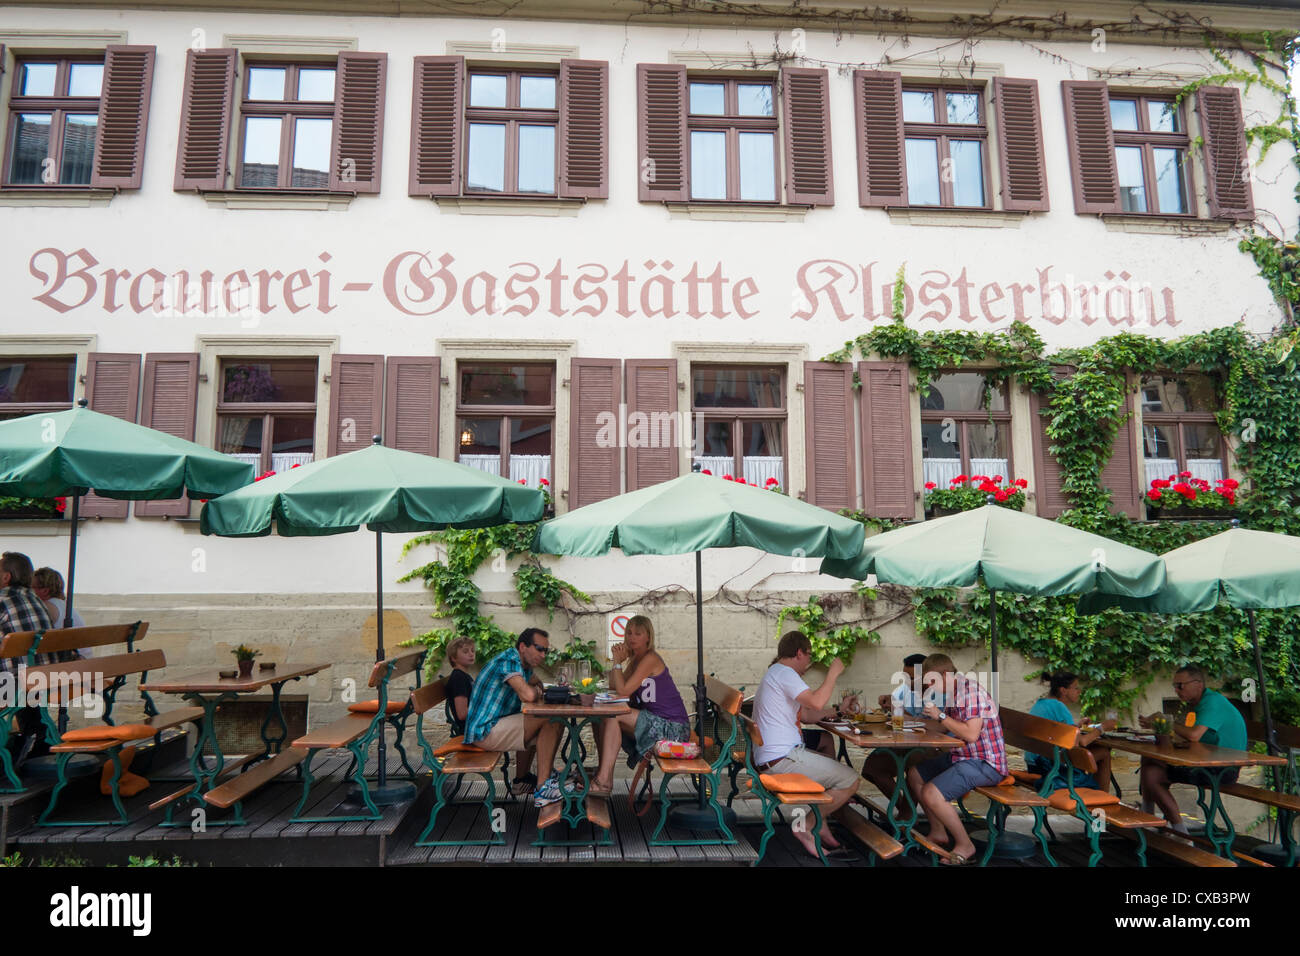 Traditional Brewery and pub in Bamberg Bavaria Germany - Stock Image